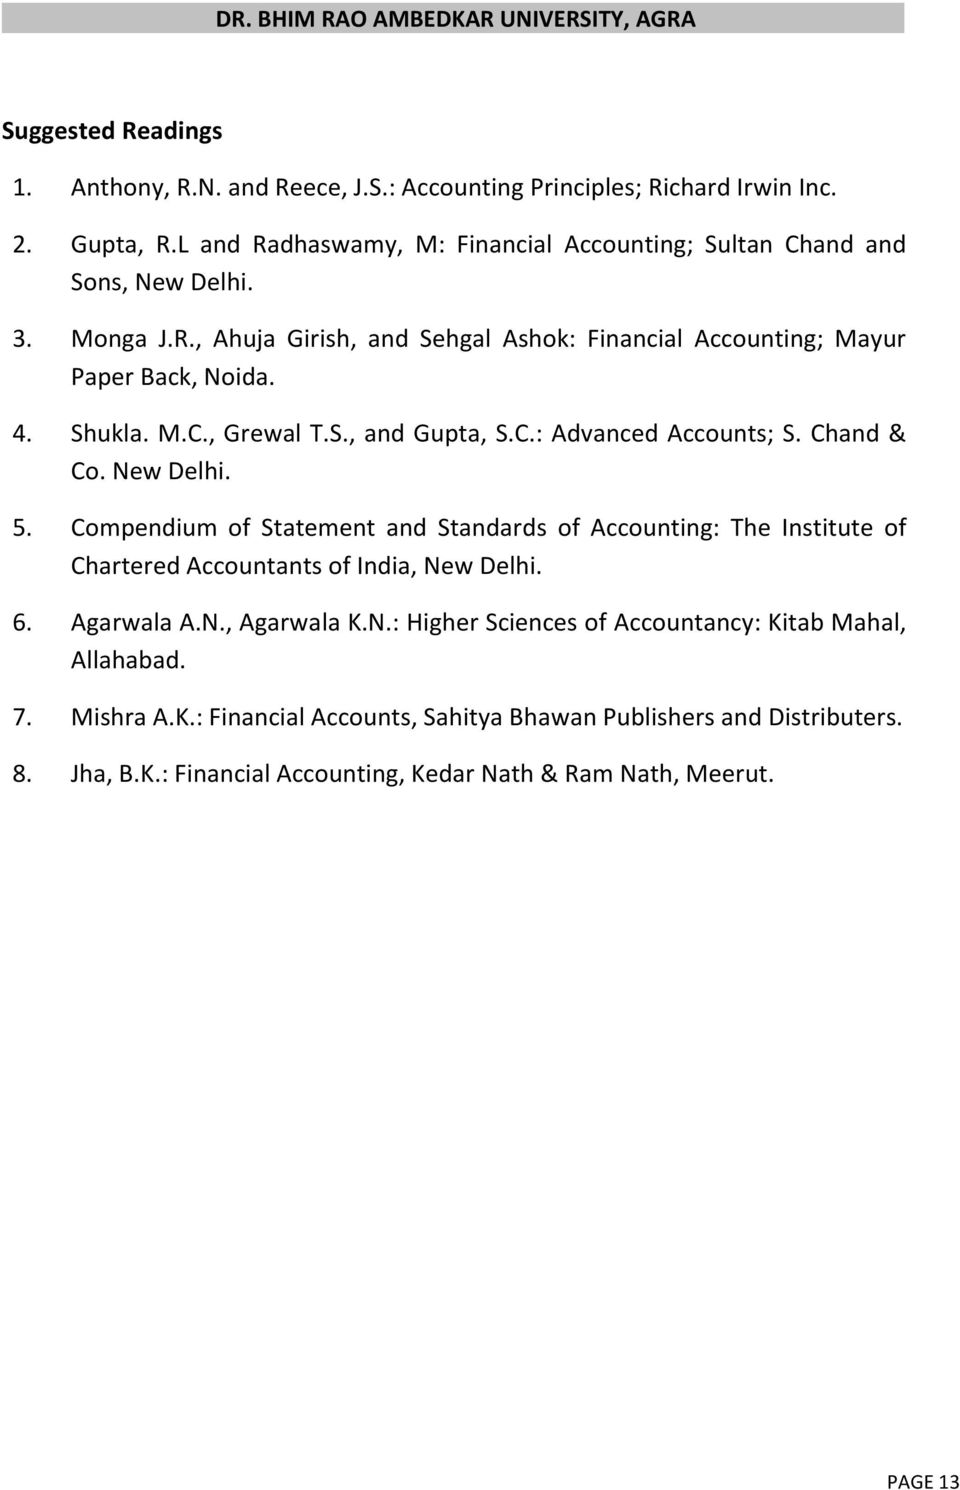 New Delhi. 5. Compendium of Statement and Standards of Accounting: The Institute of Chartered Accountants of India, New Delhi. 6. Agarwala A.N., Agarwala K.N.: Higher Sciences of Accountancy: Kitab Mahal, Allahabad.